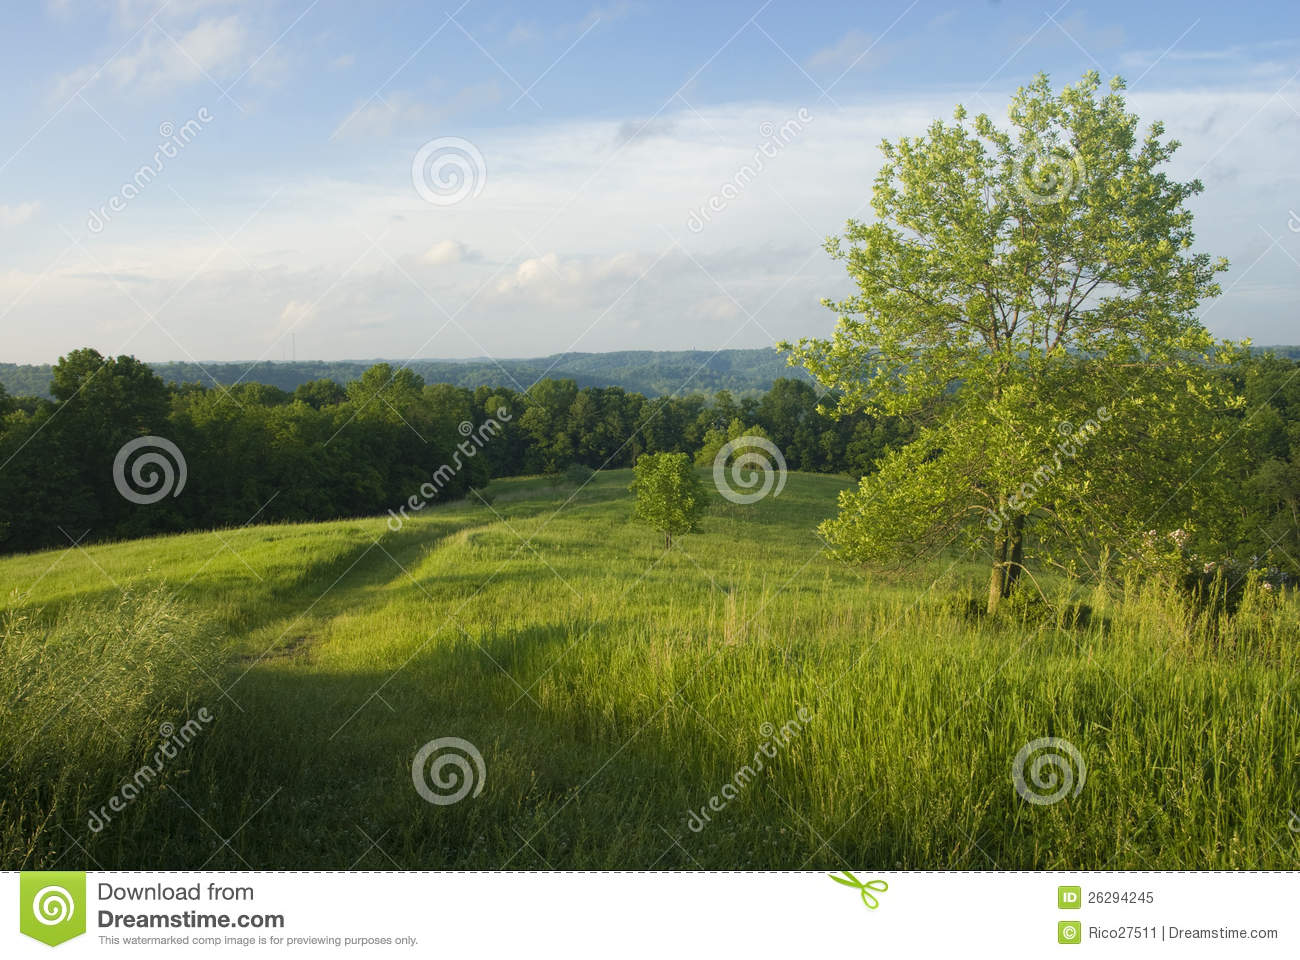 9 free vector grass hill images